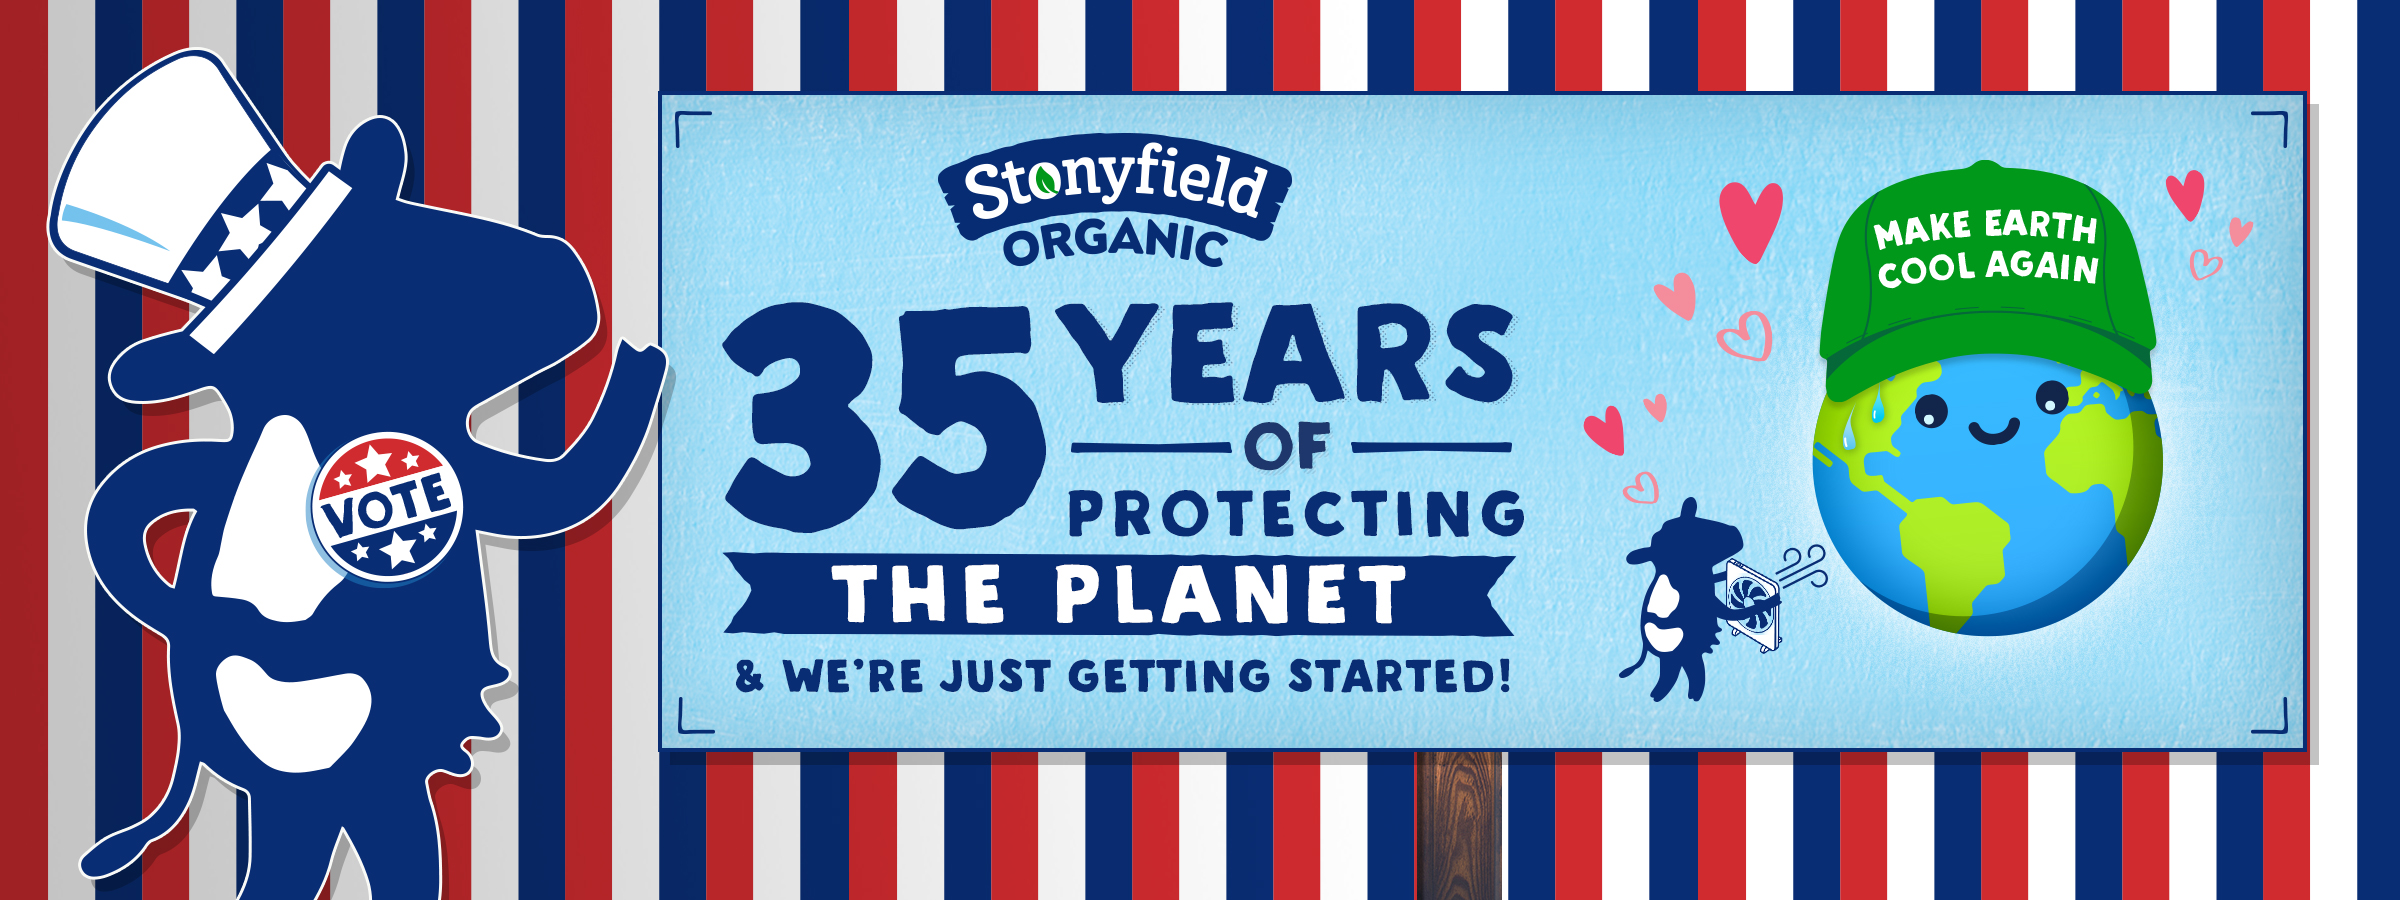 35 Years of Protecting the Planet